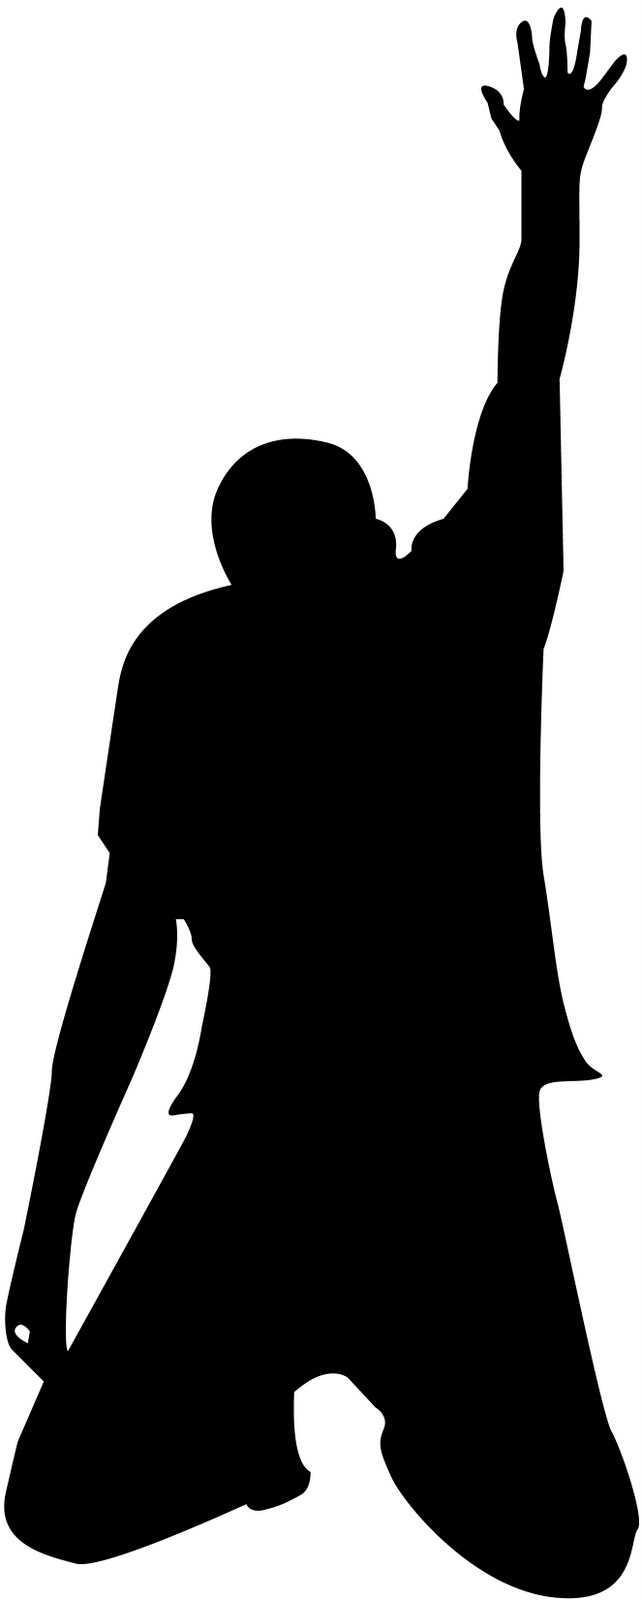 642x1600 Black Man Praying Clipart